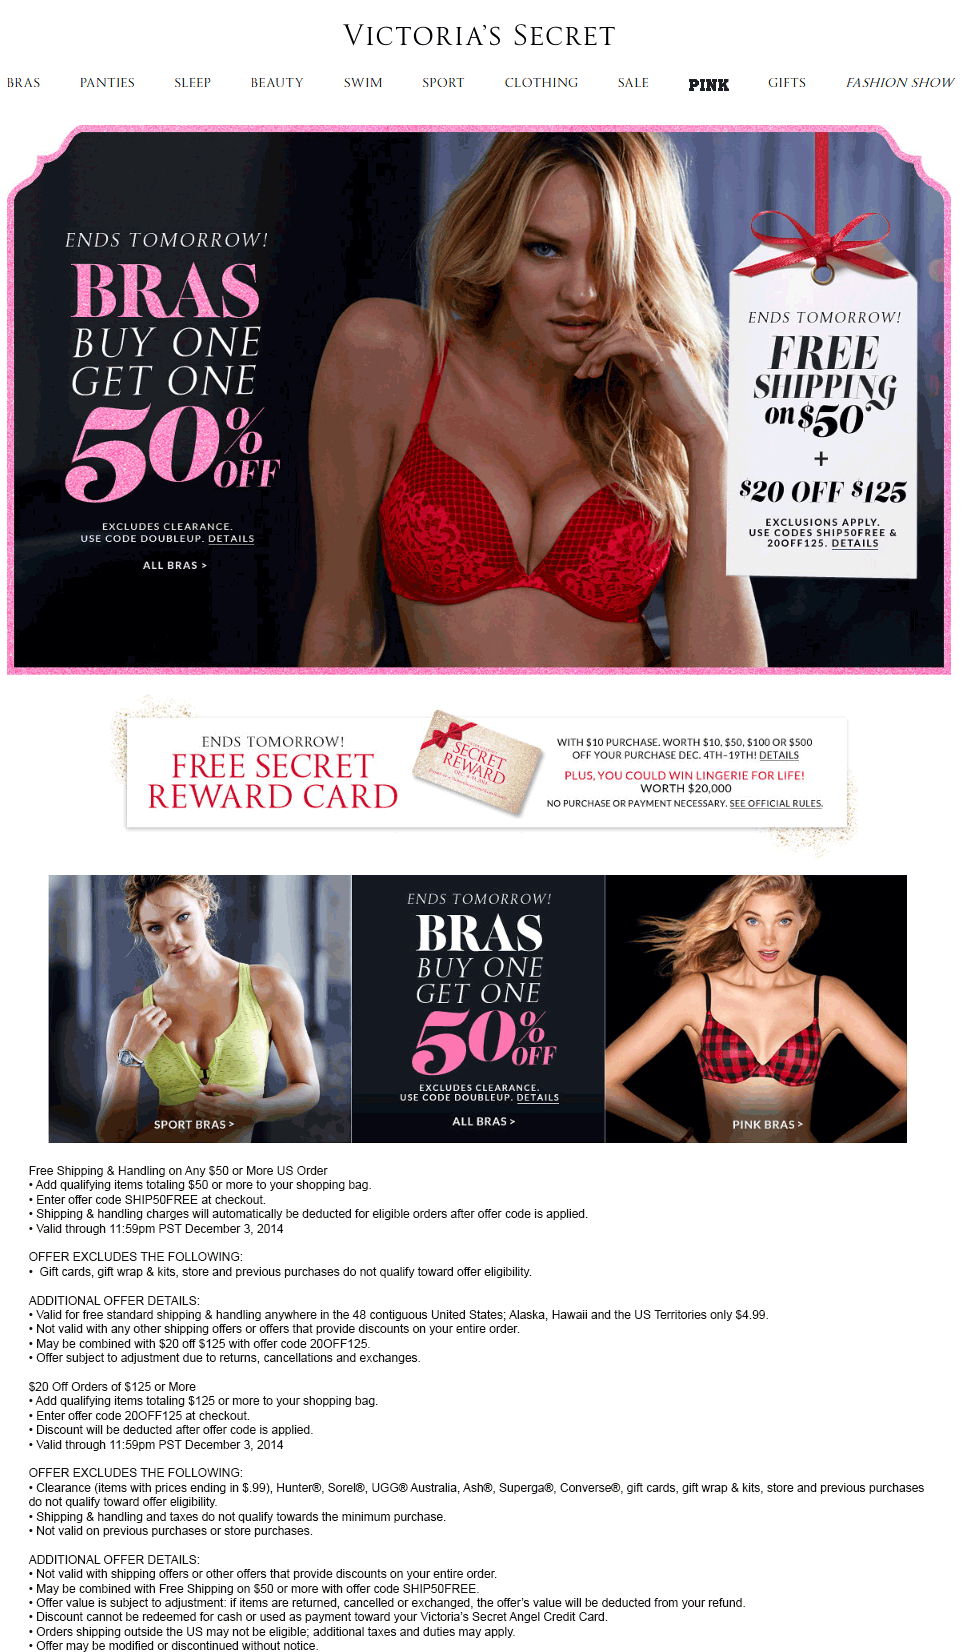 Victorias Secret Coupon April 2017 Second bra 50% off + $20 off $125 online at Victorias Secret via promo code 20OFF125